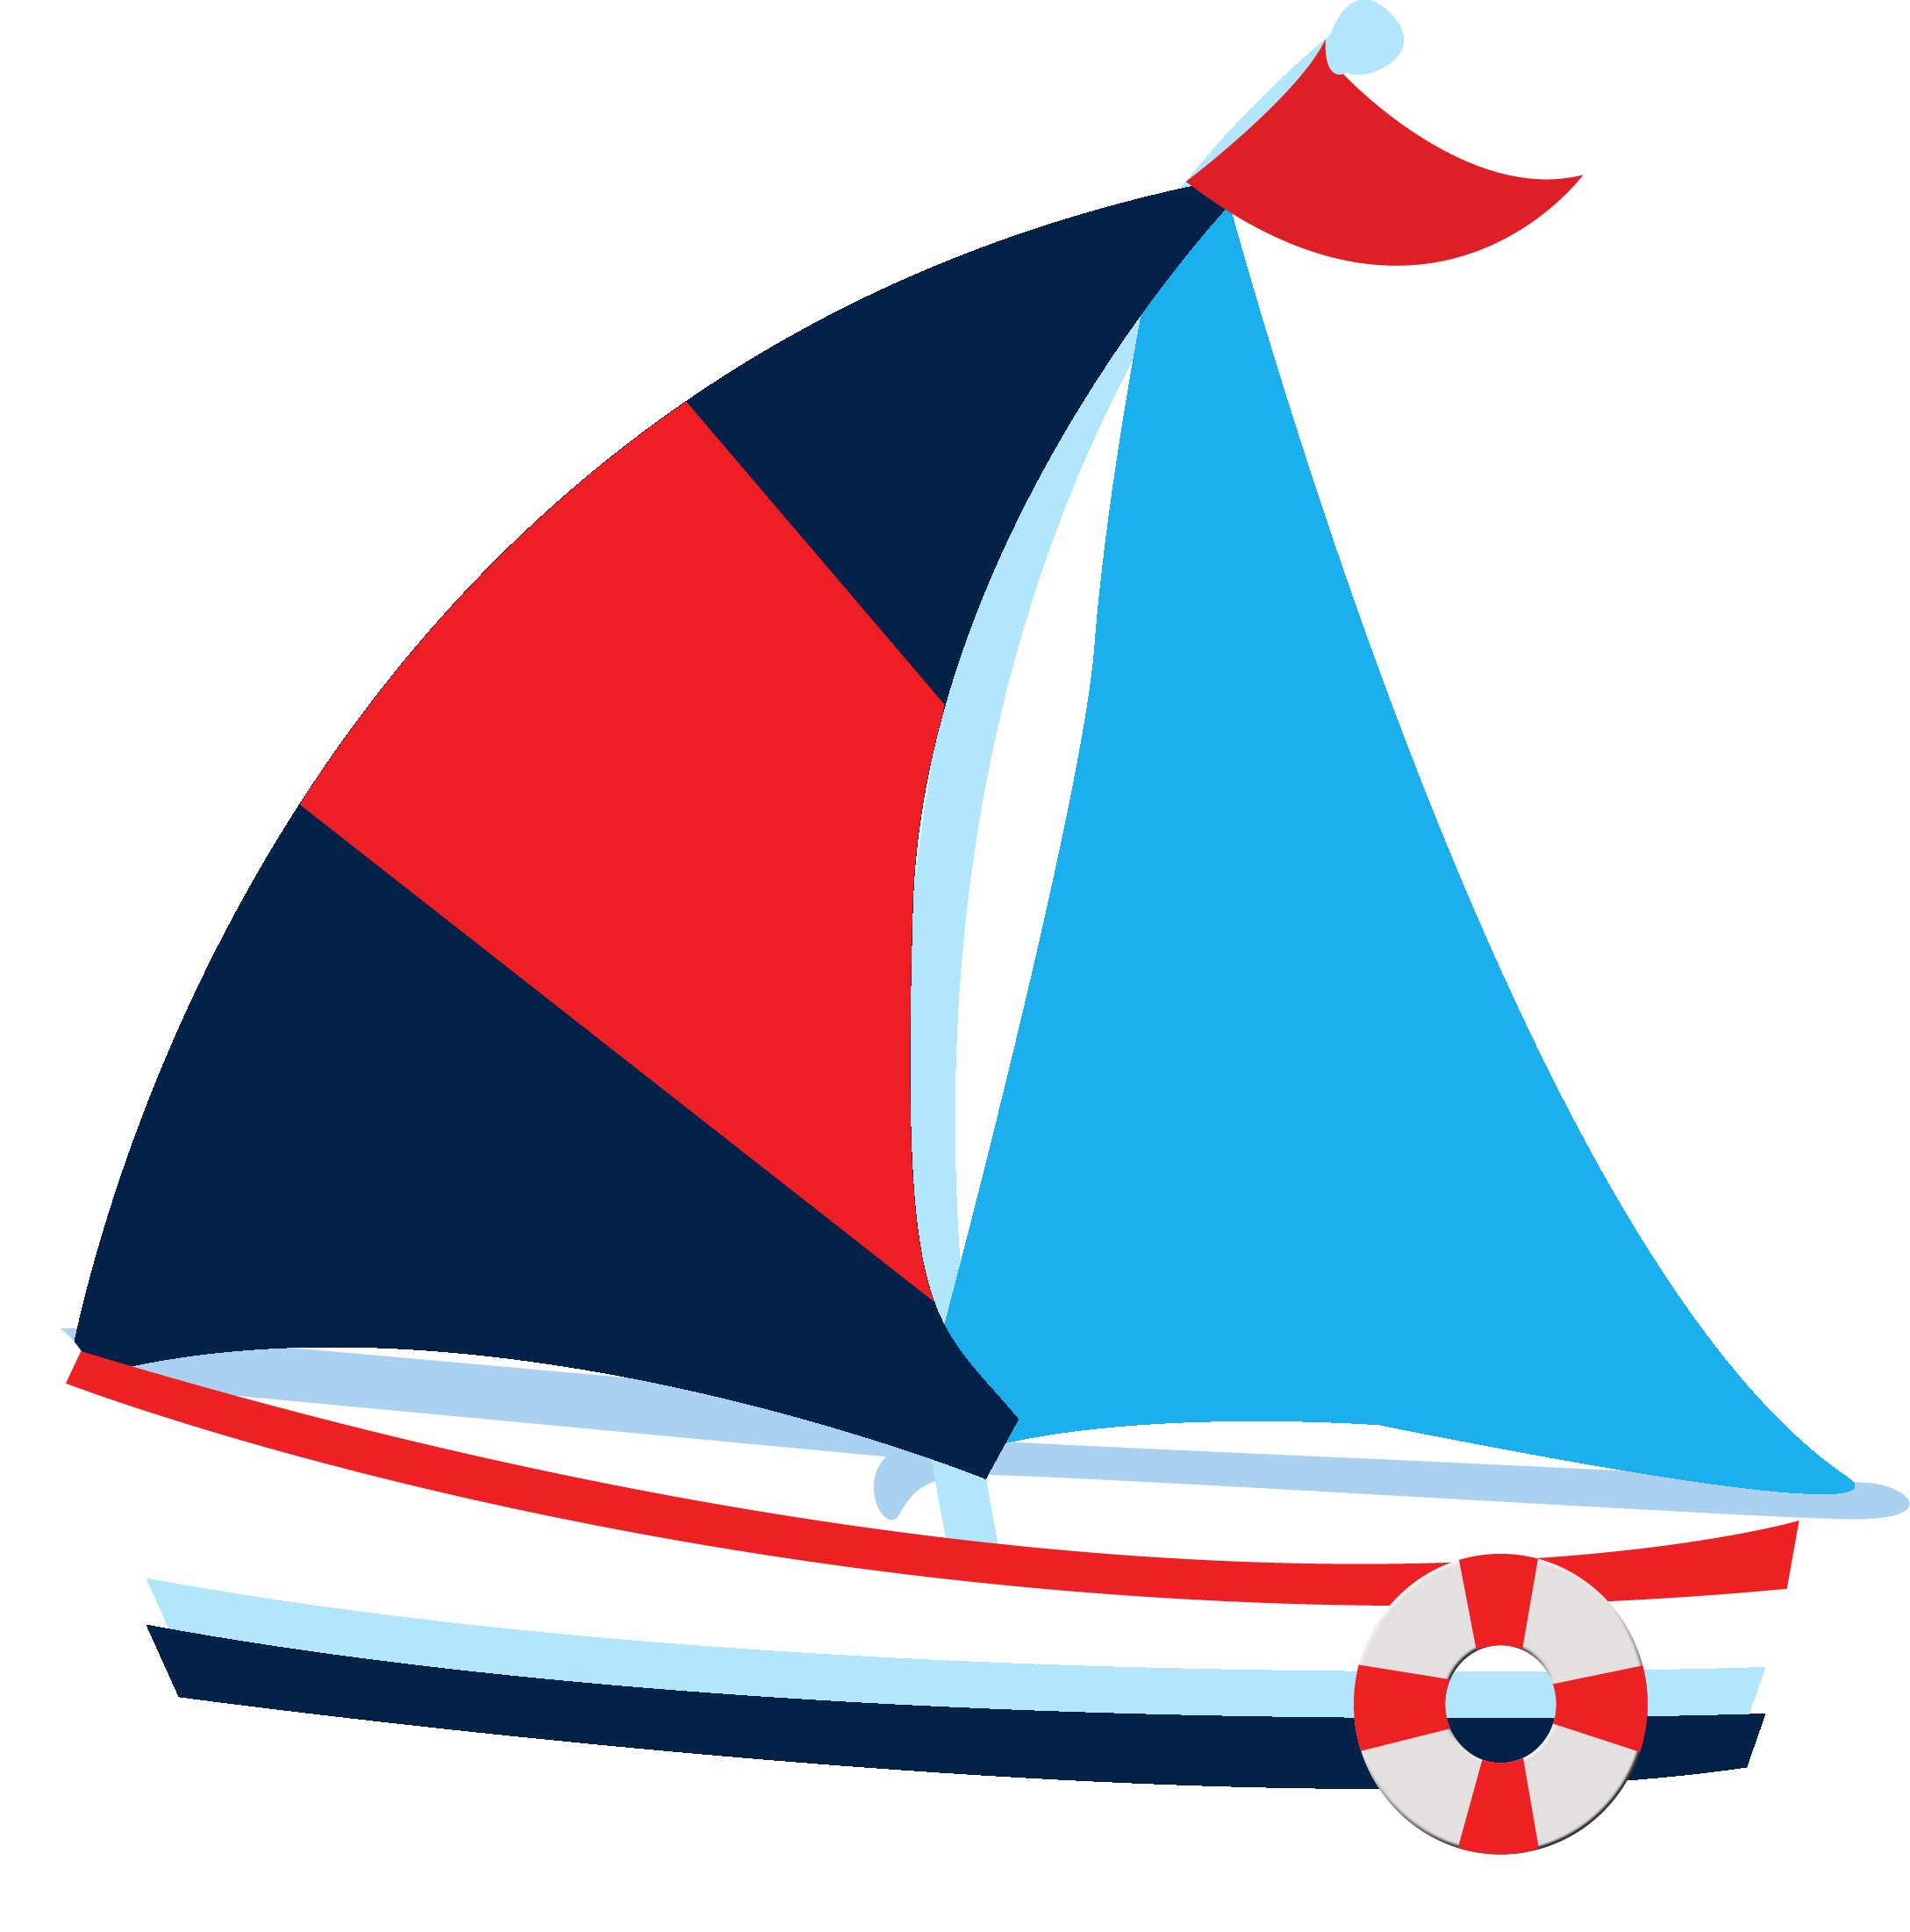 Sailing clipart transparent #5 - Sailboat PNG HD